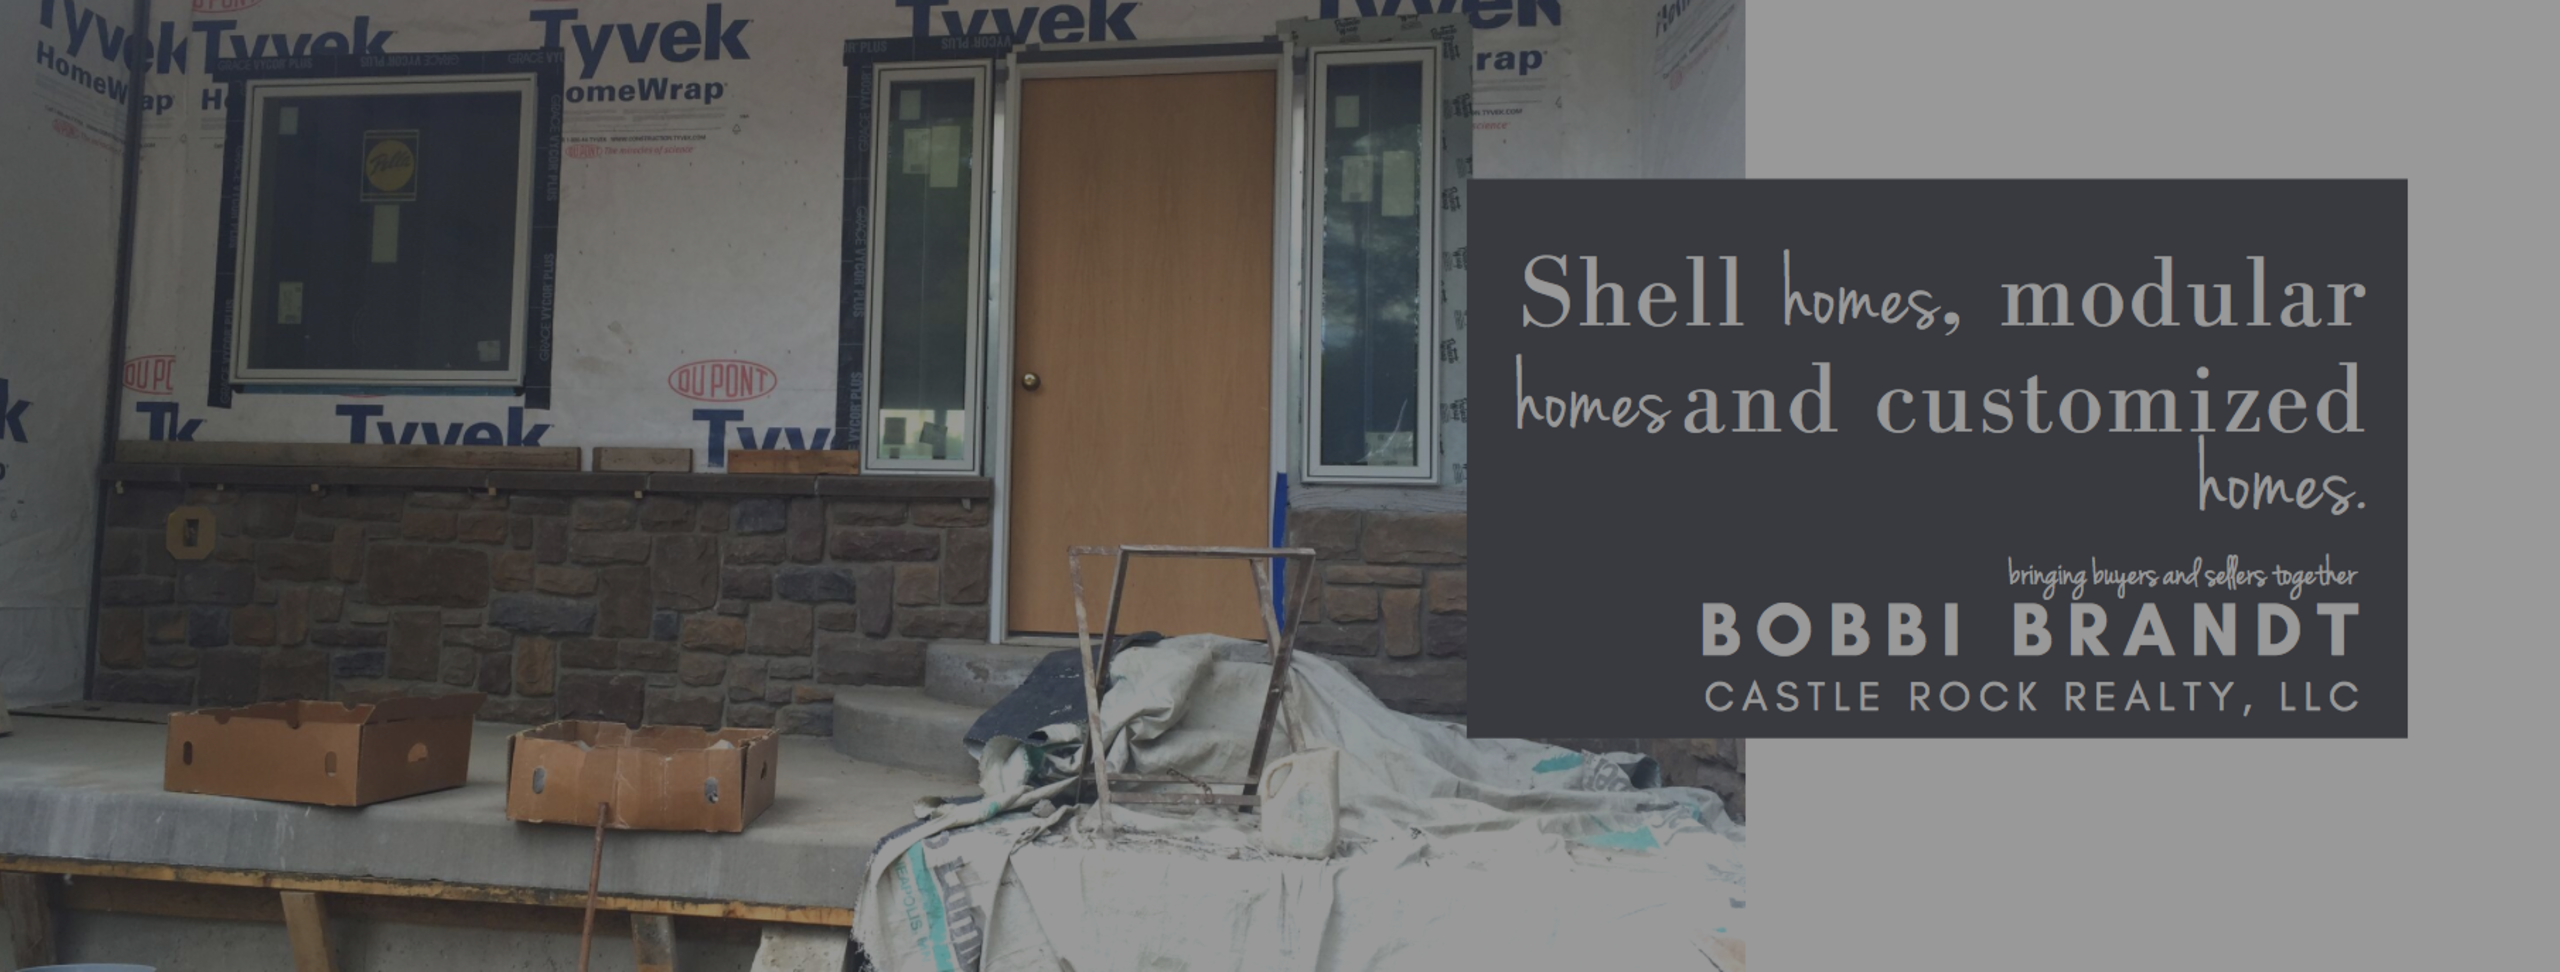 So you want to build a home – Shell homes, modular homes and customized homes